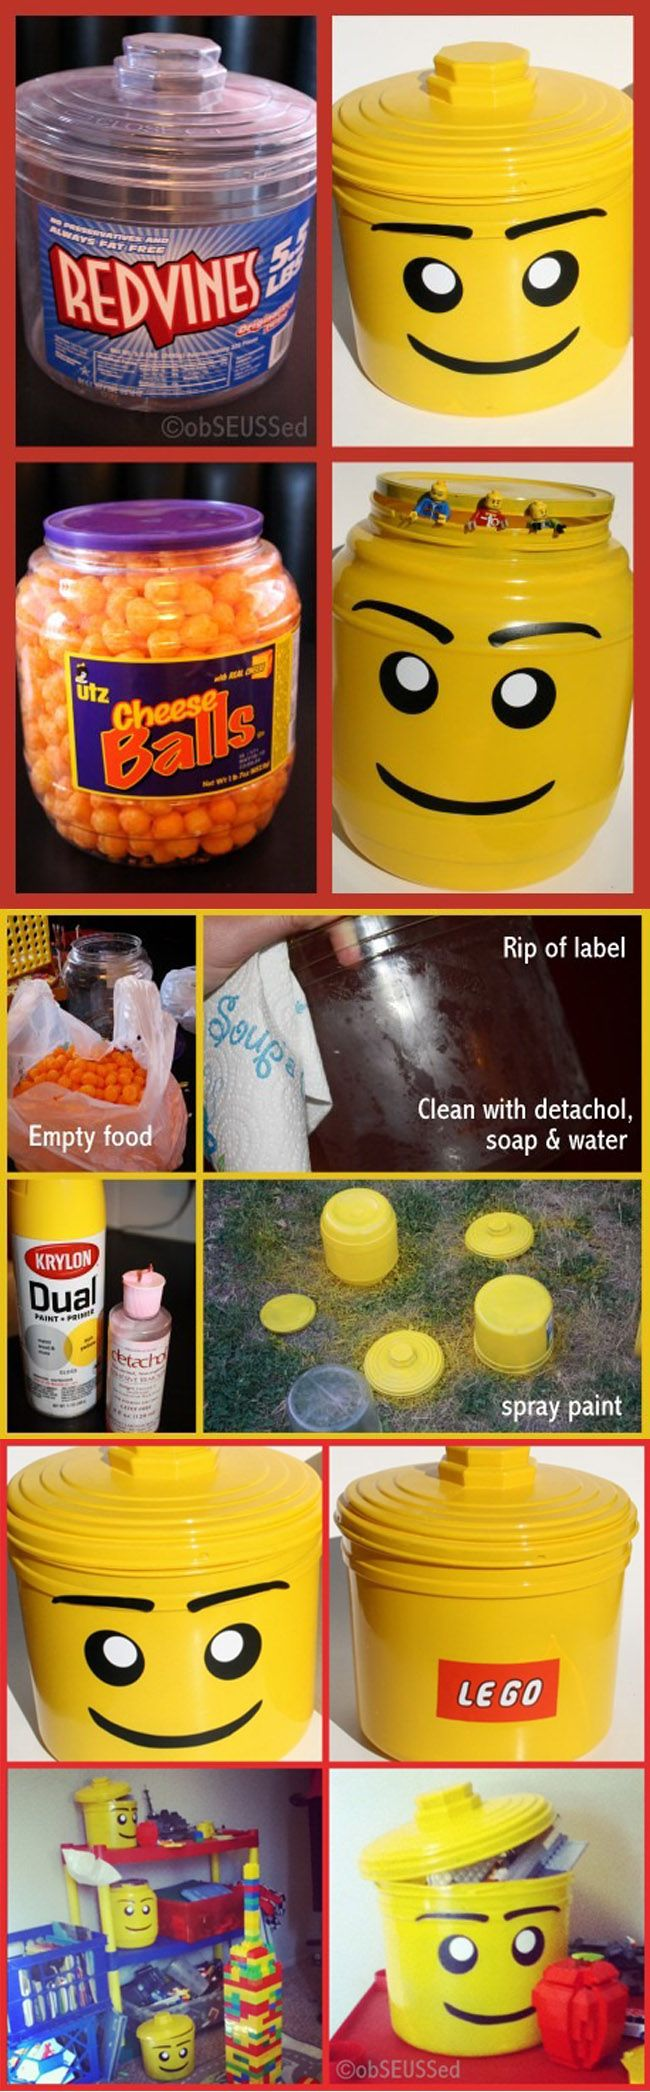 Diy Storage Container Ideas Best 25 Storage Containers Ideas Only On Pinterest Food Storage